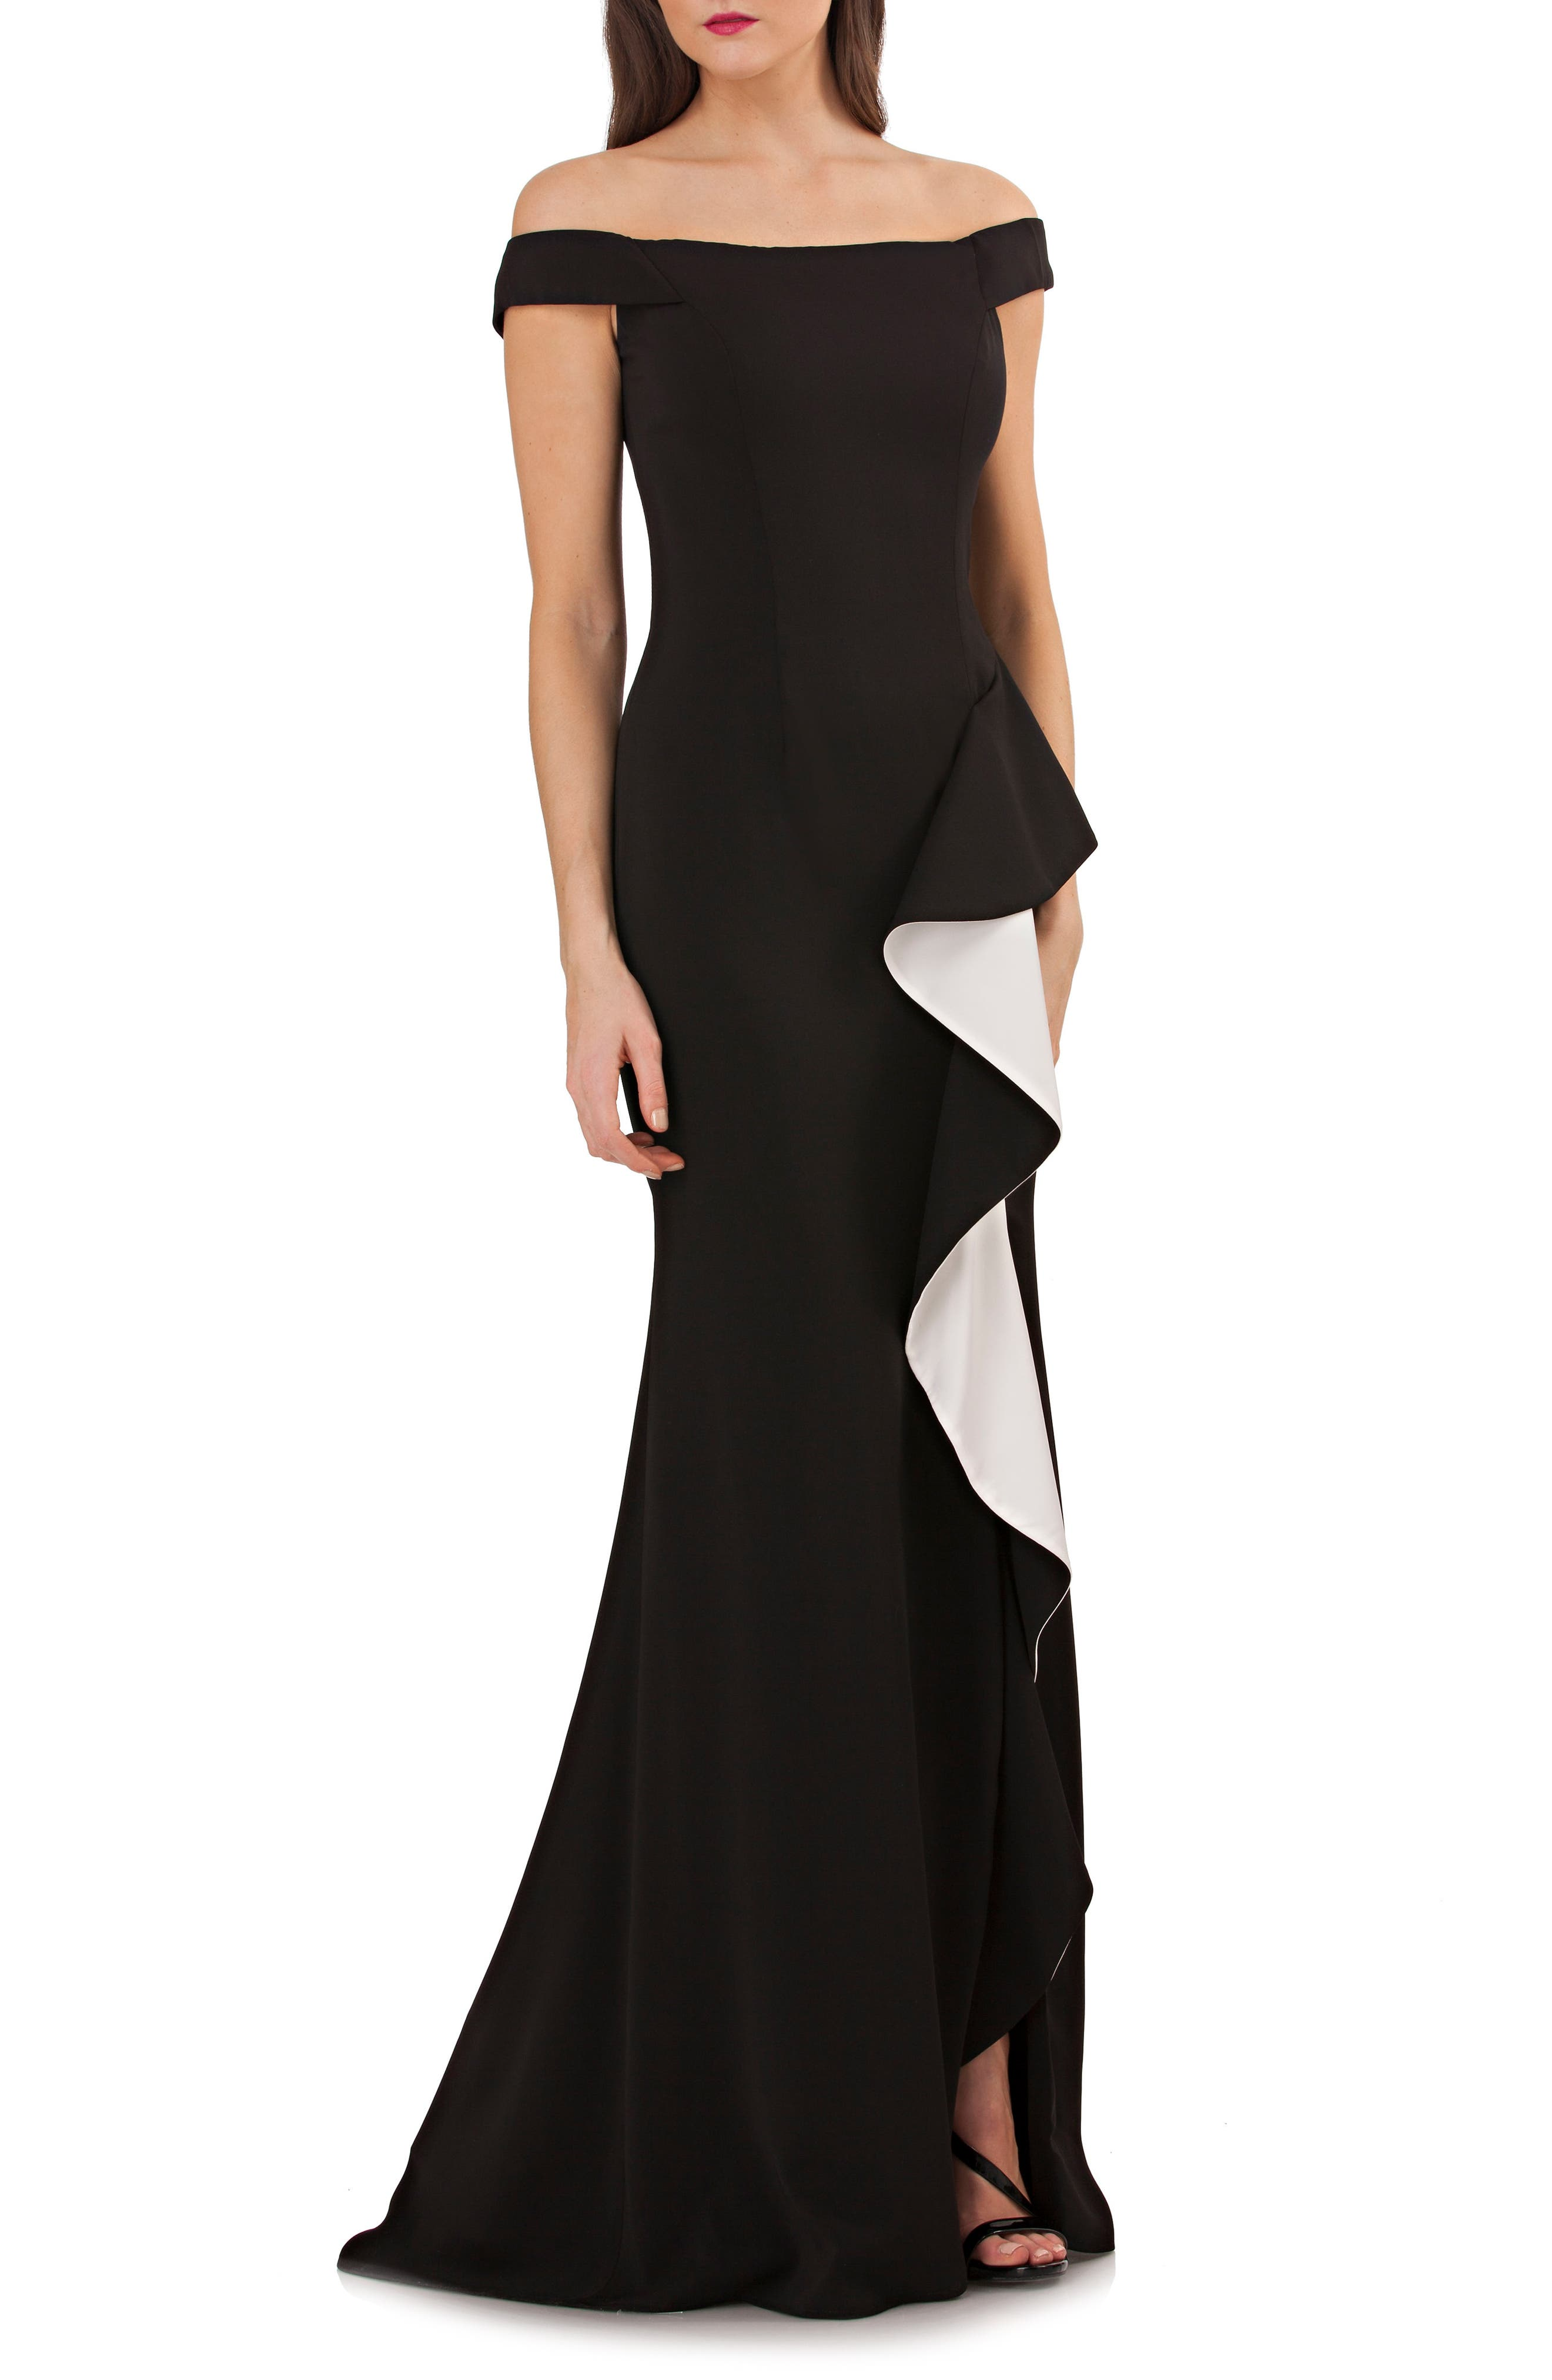 Ruffle Off the Shoulder Gown,                             Main thumbnail 1, color,                             Black/ White